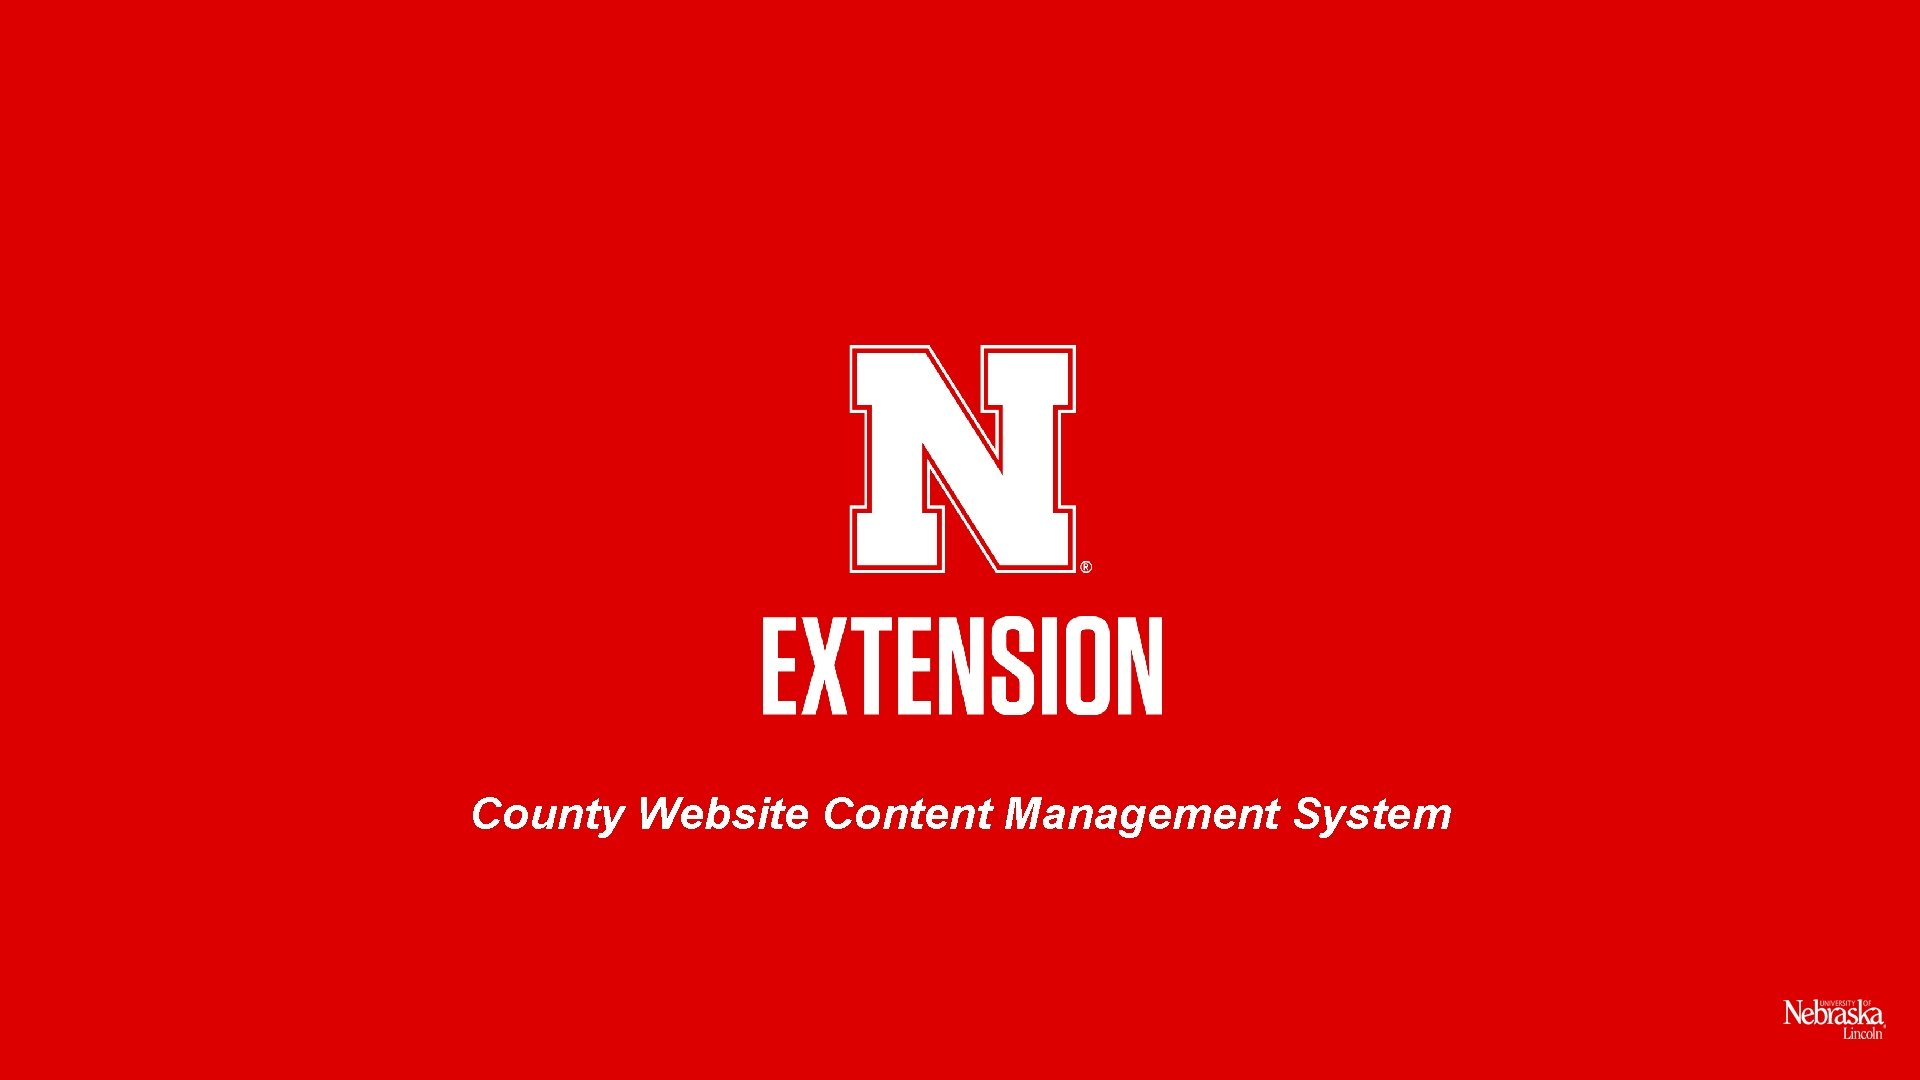 County Website Content Management System